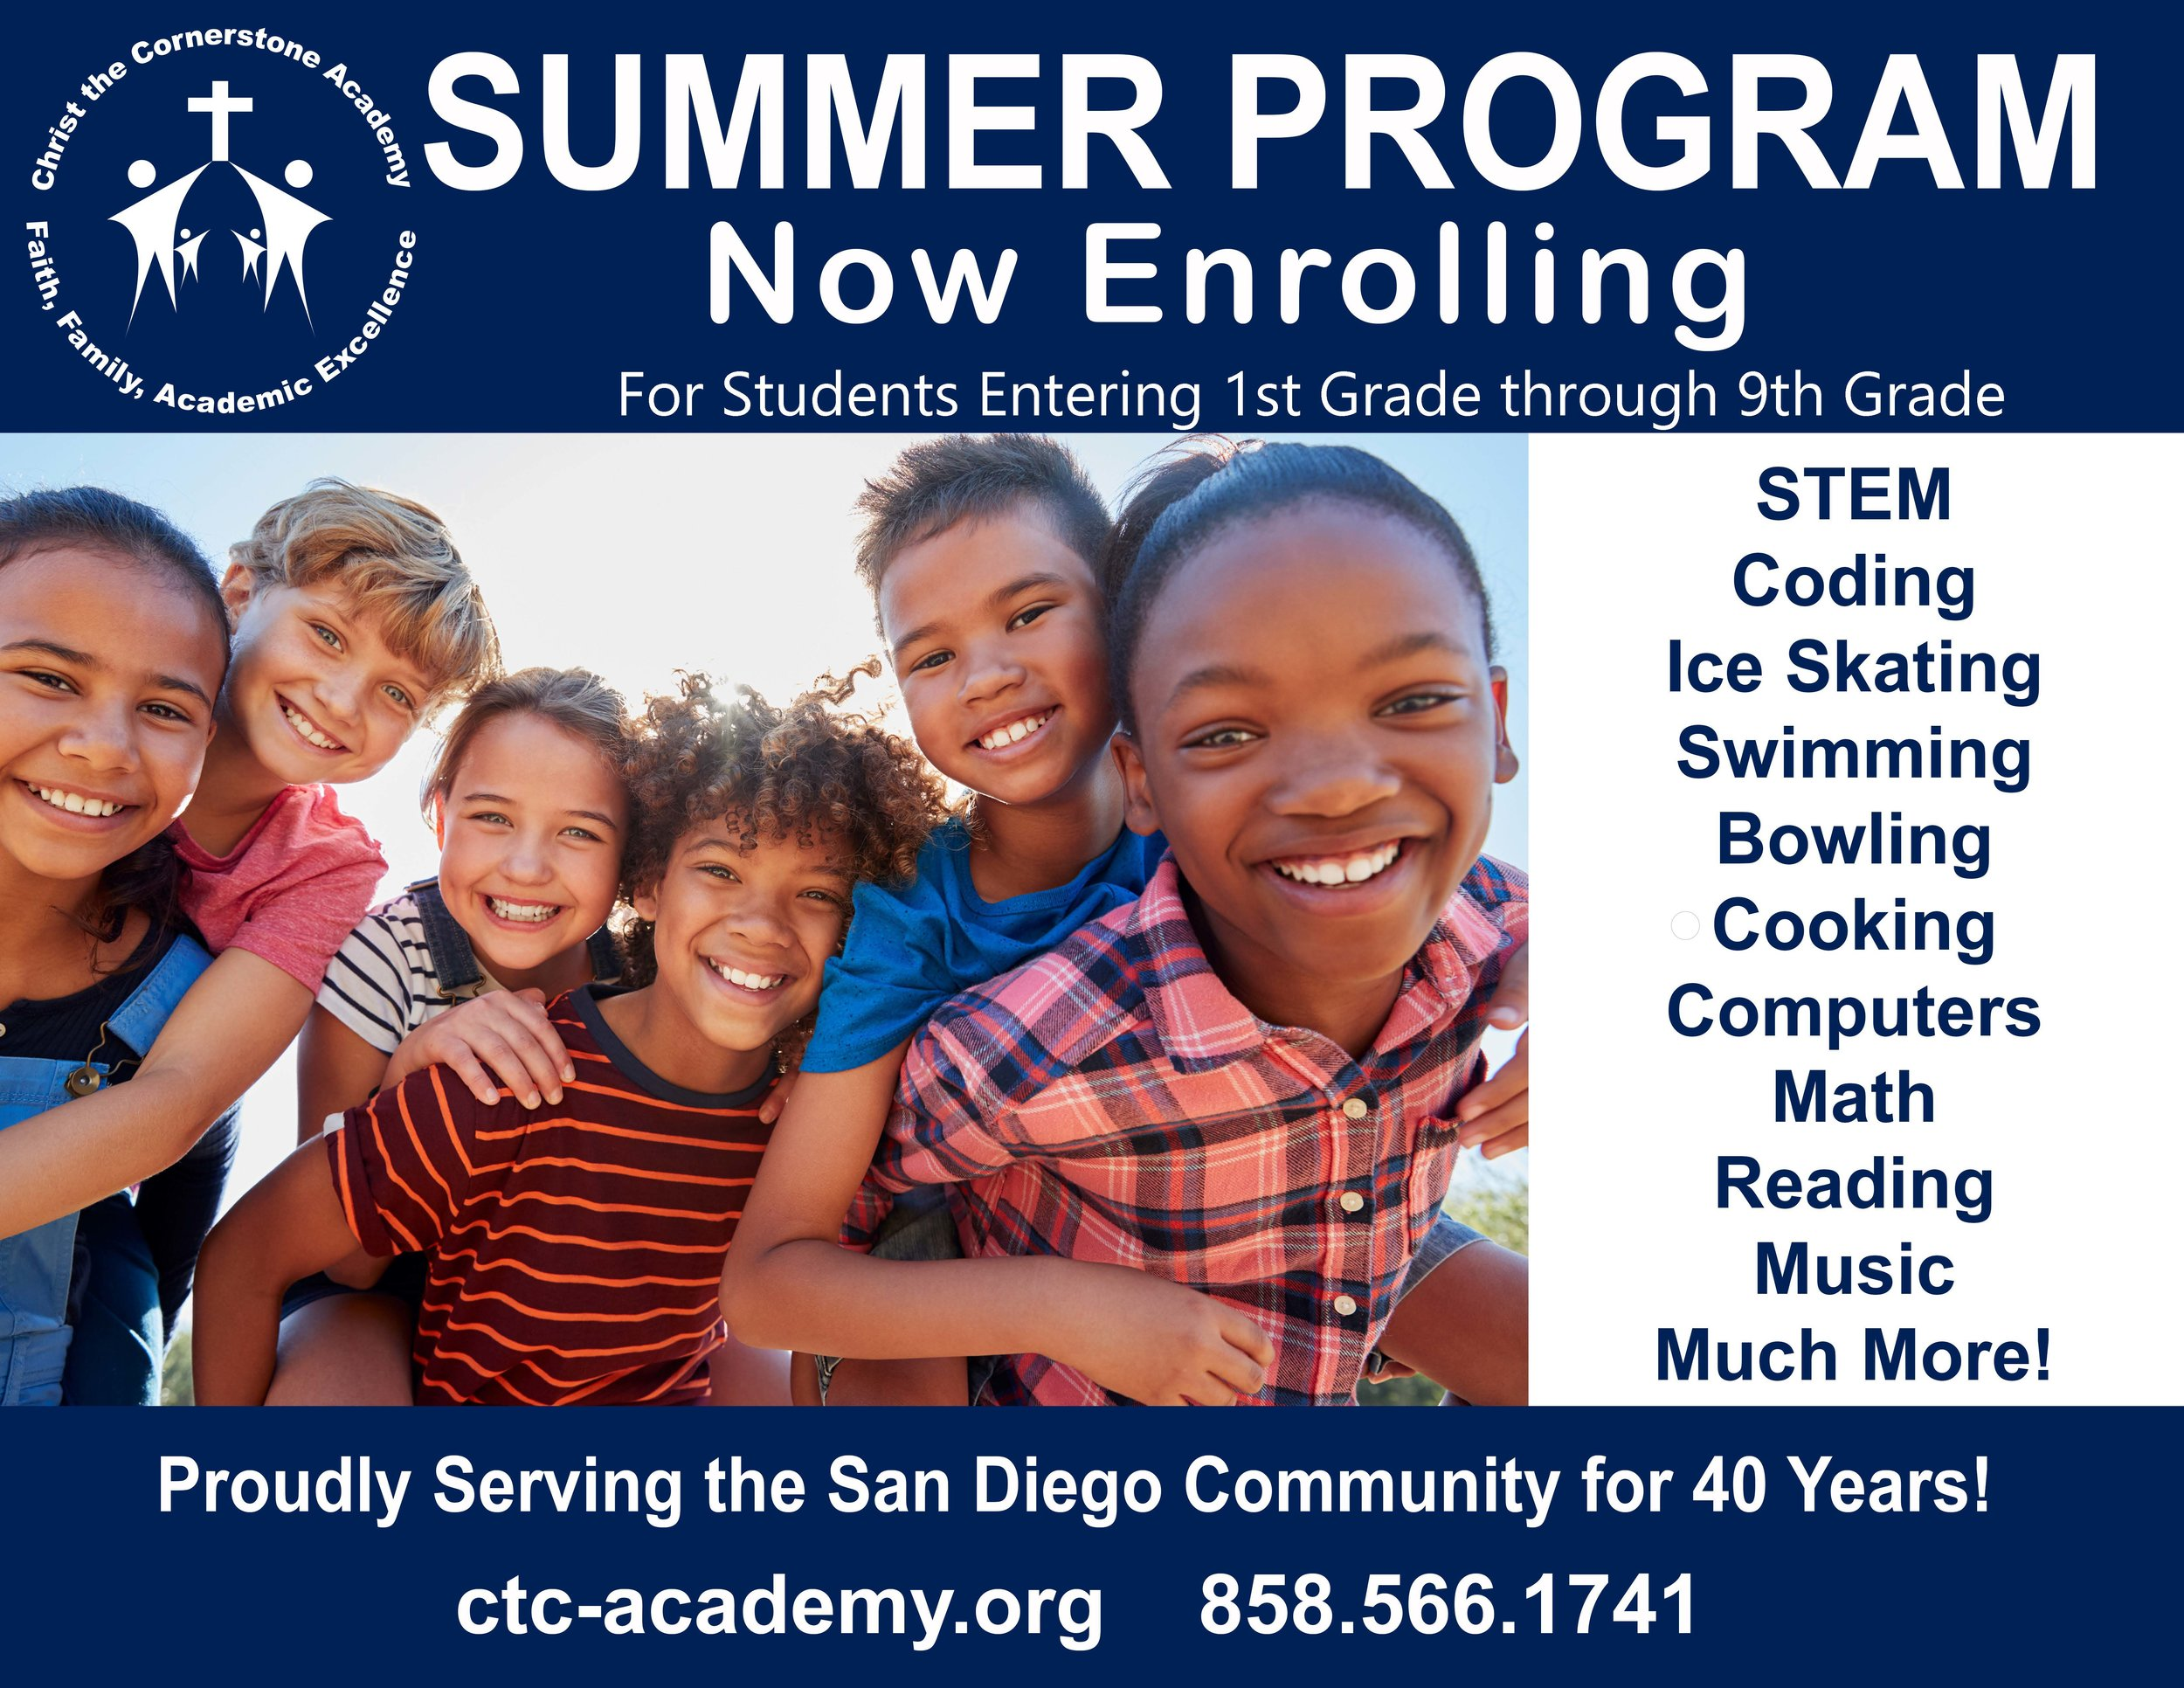 Enrolling Summer Flyer 2018.jpg